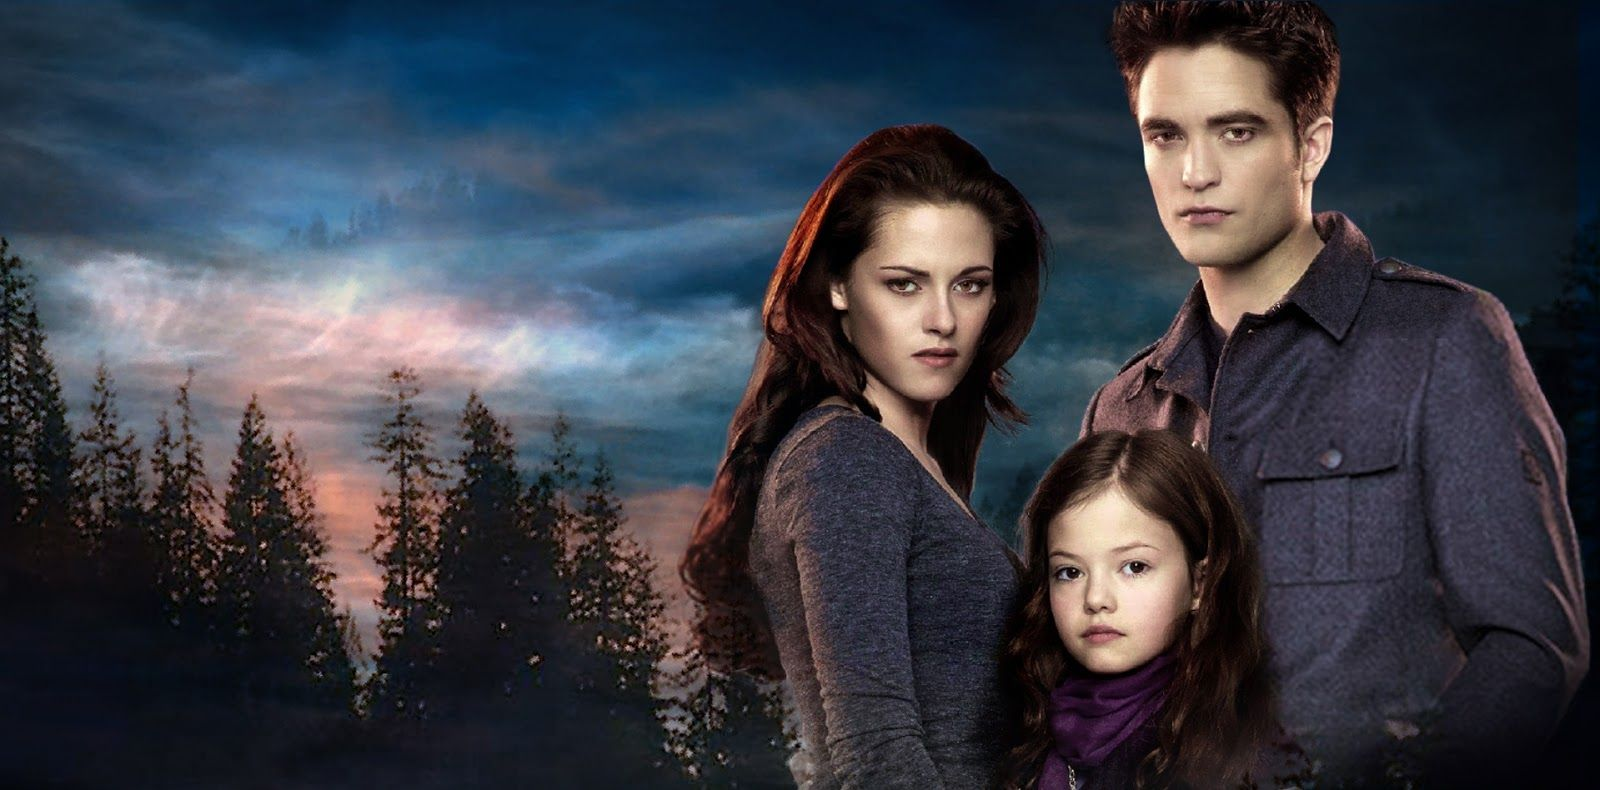 Twilight Saga Breaking Dawn Part 2 Wallpapers And Photos All